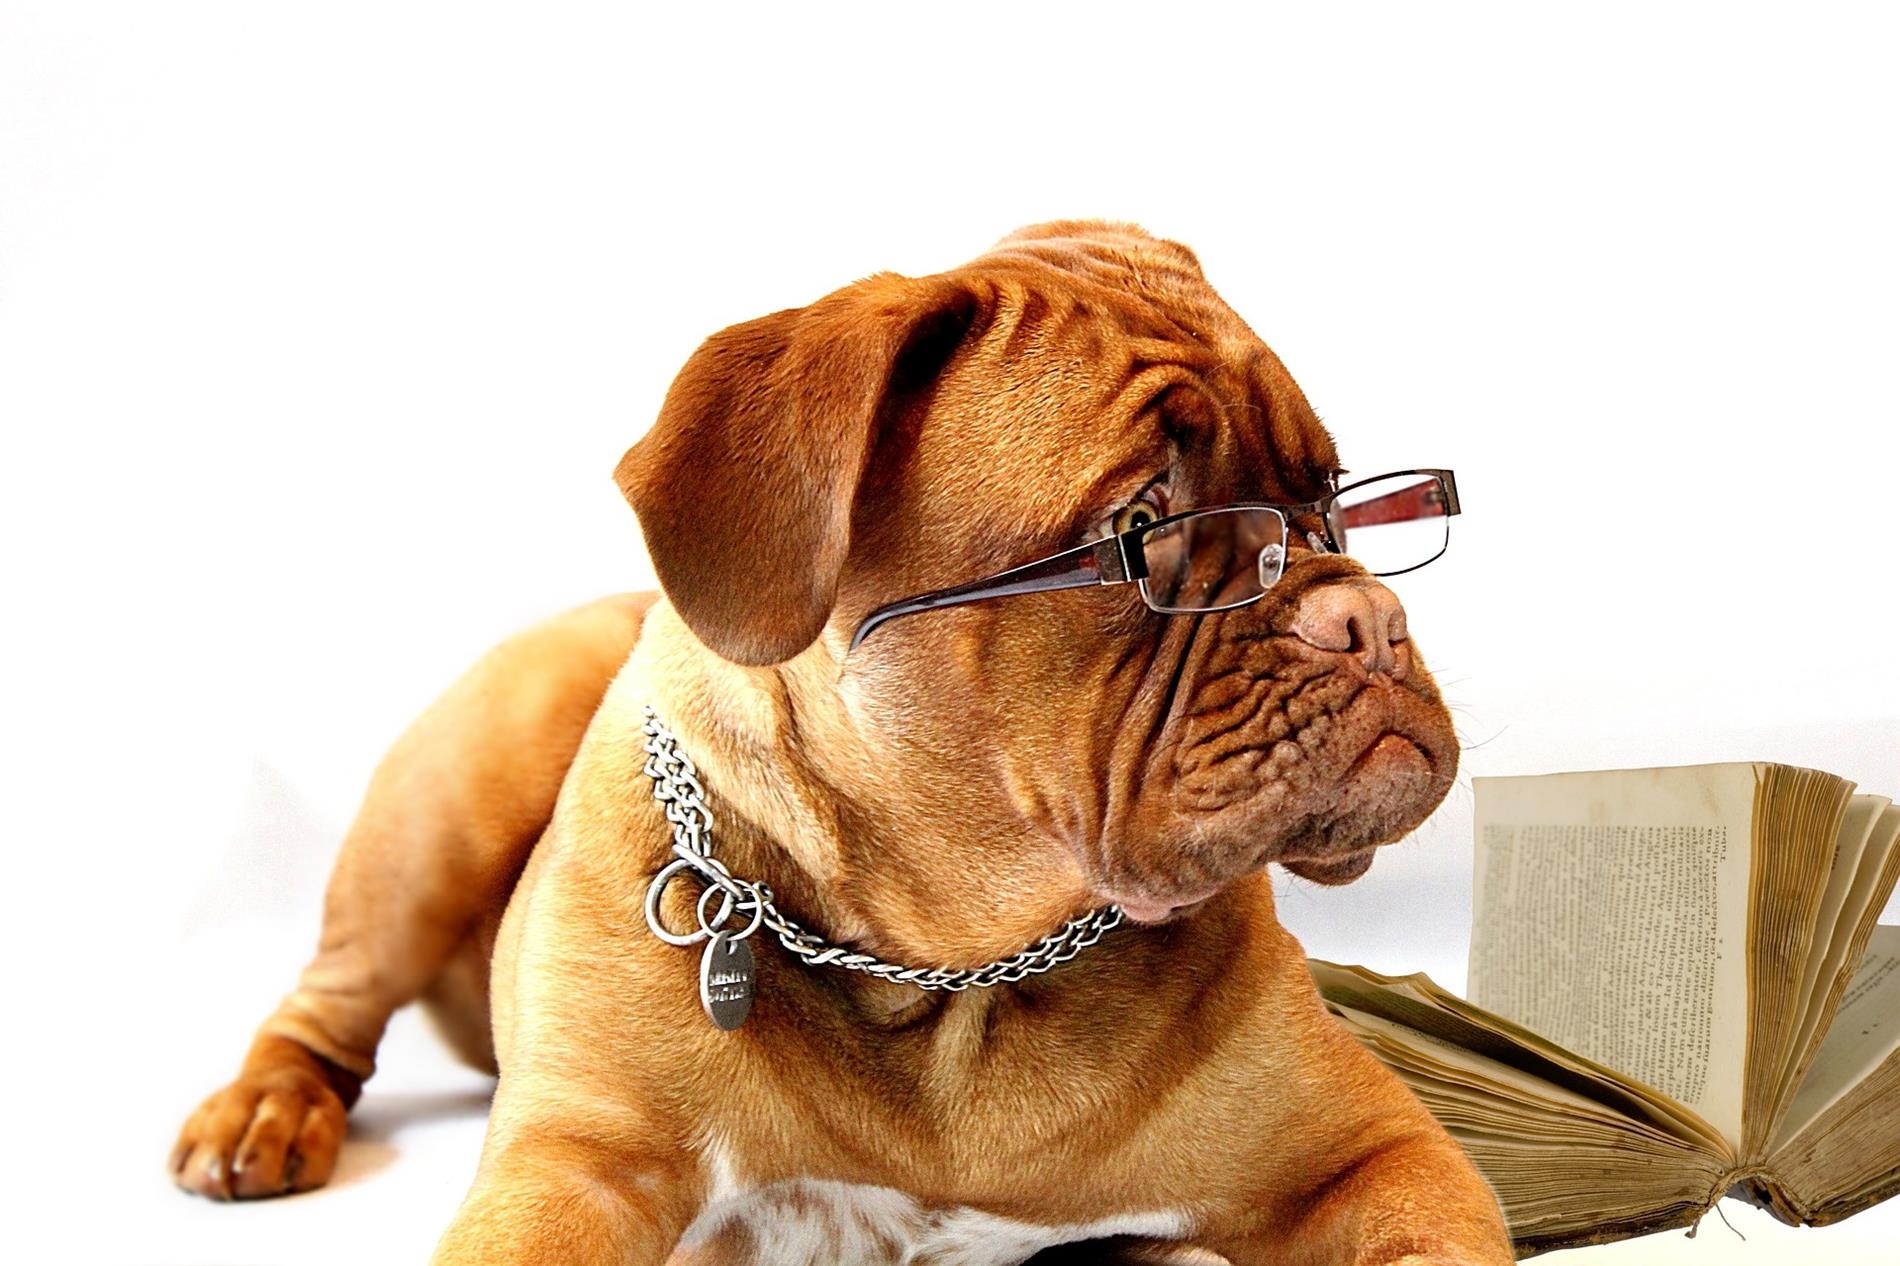 Funny long-faced dog with glasses and open book